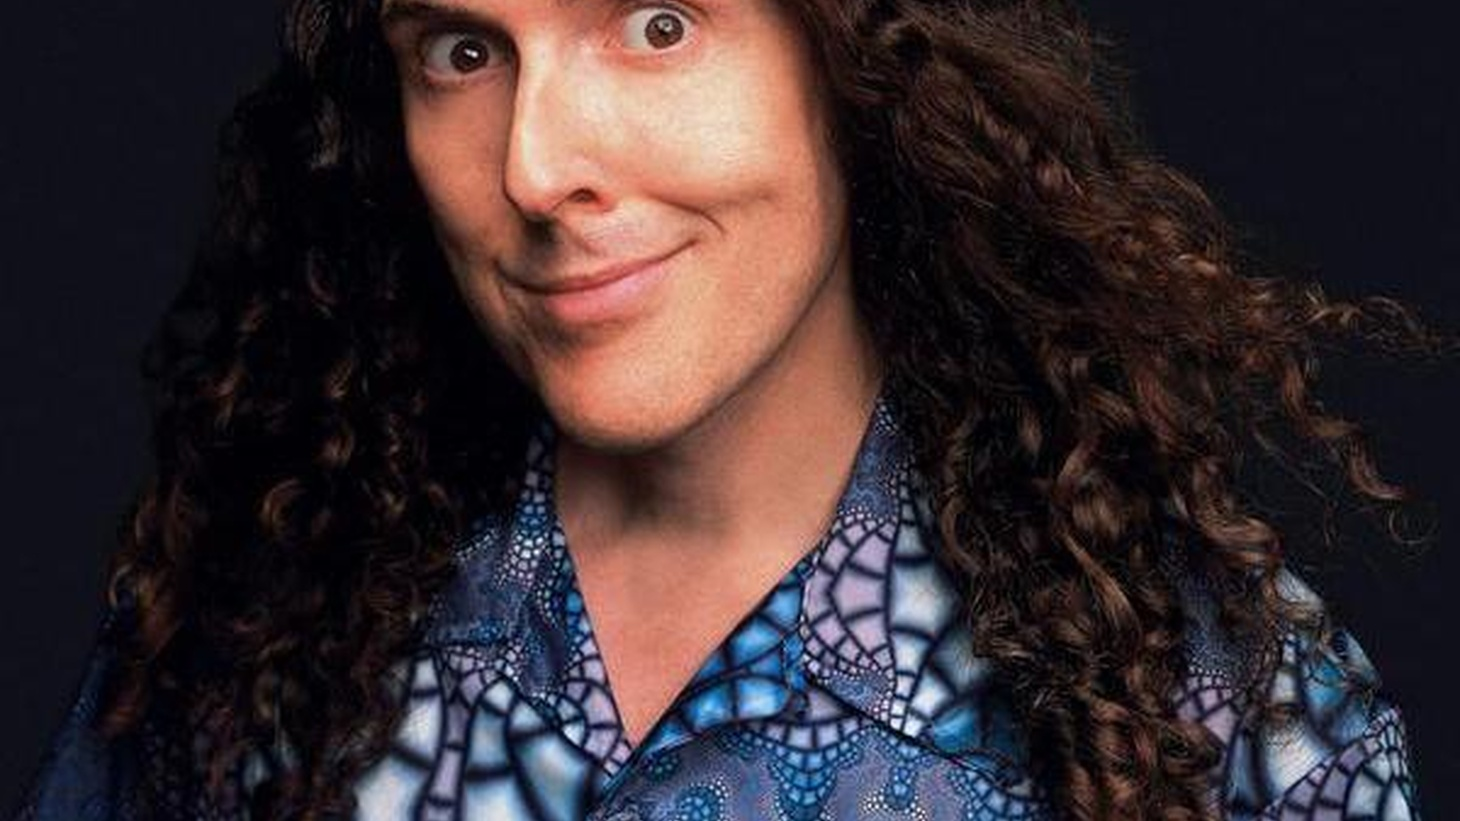 """""""Weird Al"""" Yankovic is a cultural icon and the best selling comedy recording artist of all time. He's known for his song parodies, but we wanted to delve into what music inspired him in his Guest DJ set, from an instrumental classic and some obscure singles to the best love song of all time."""